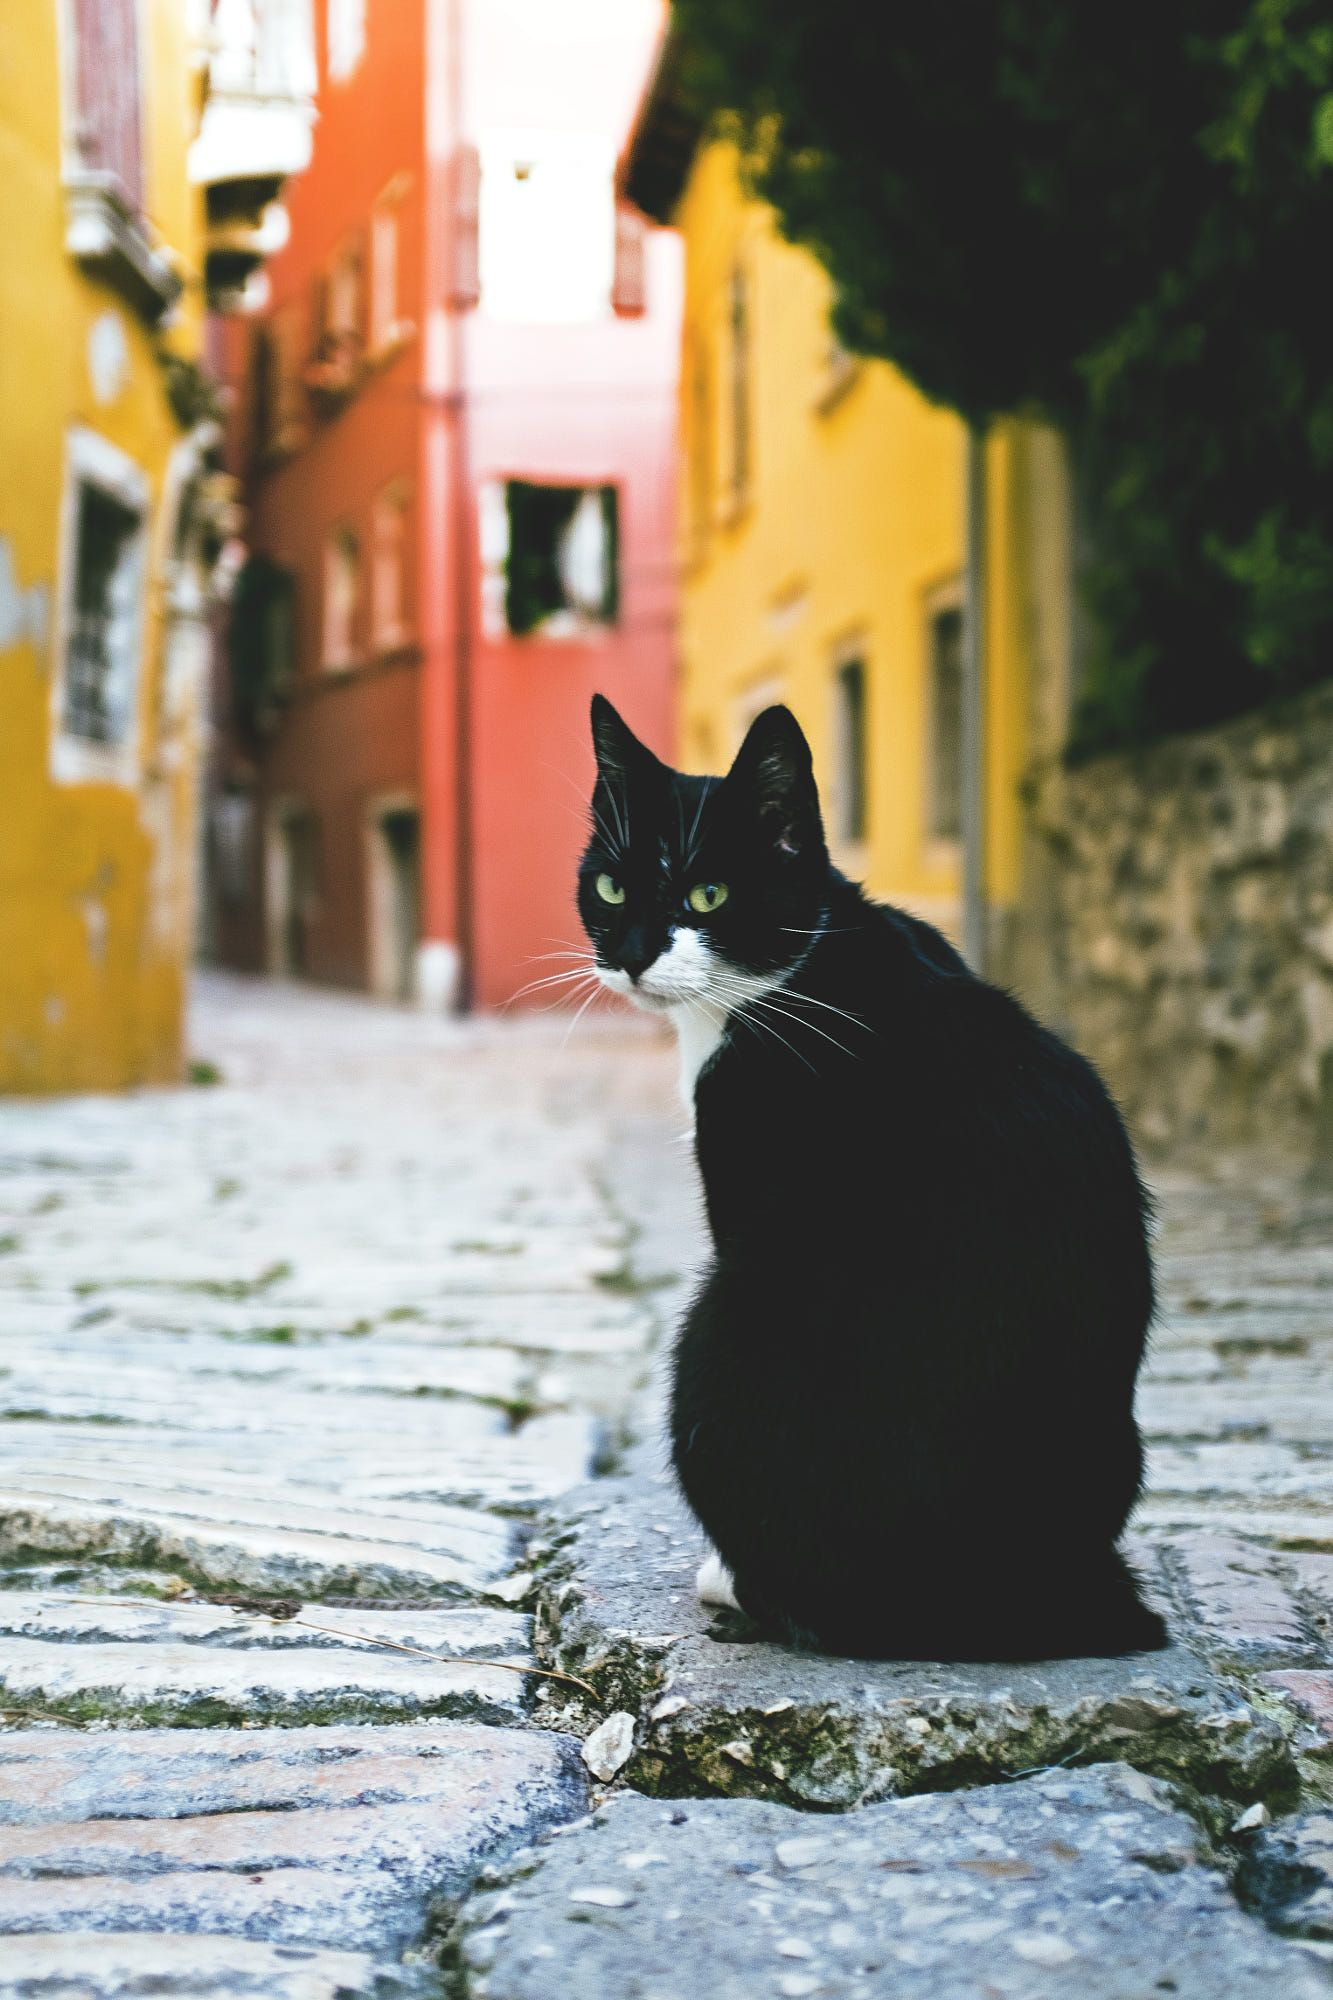 Croatian Cat (With images) Cats, Cat lovers, Domestic cat